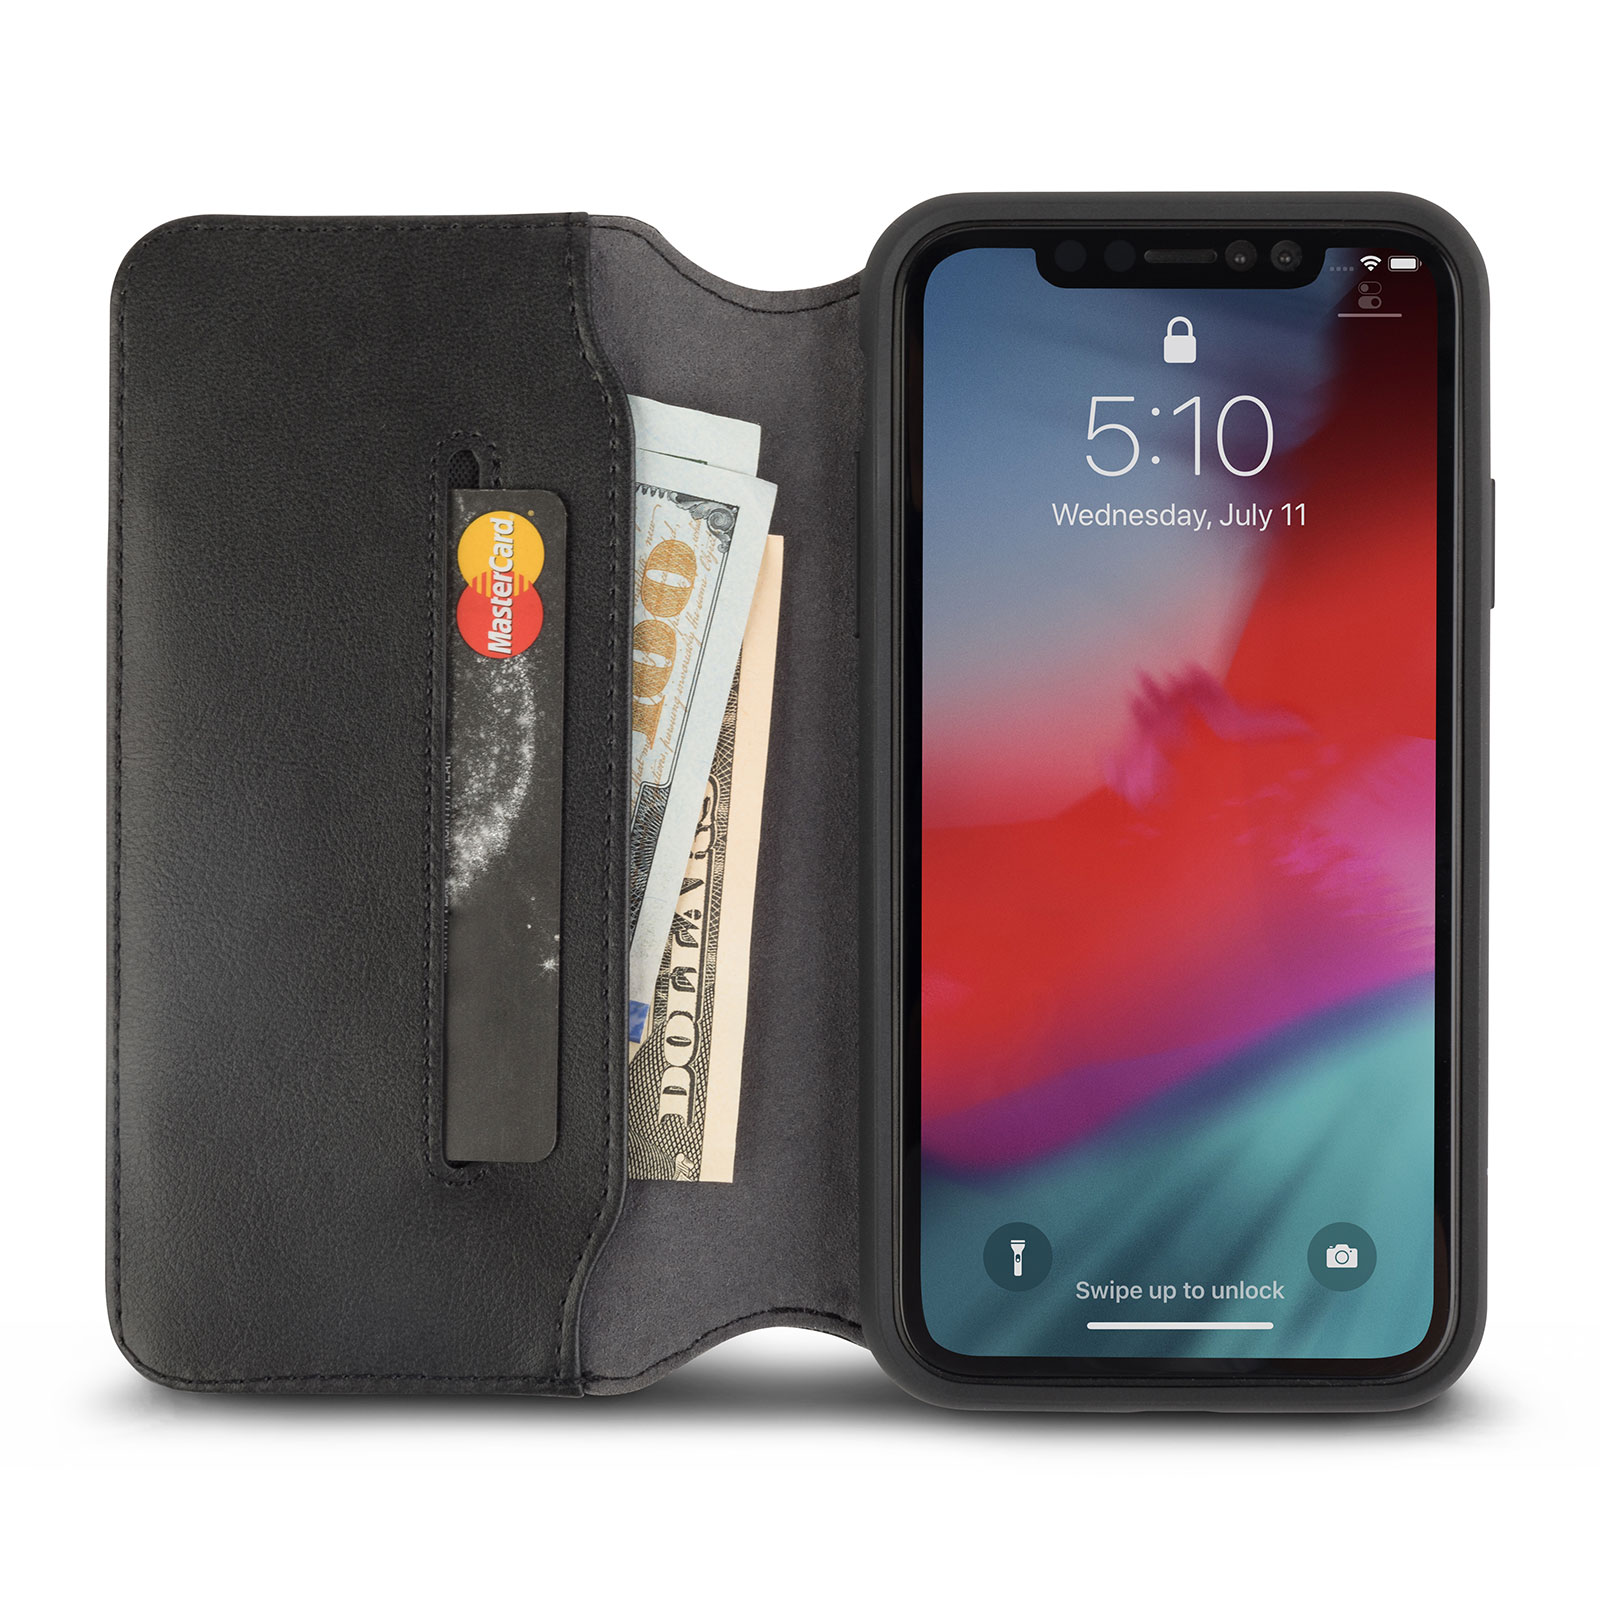 IPhone Premium Wallet Case - Shop IPhone Cases